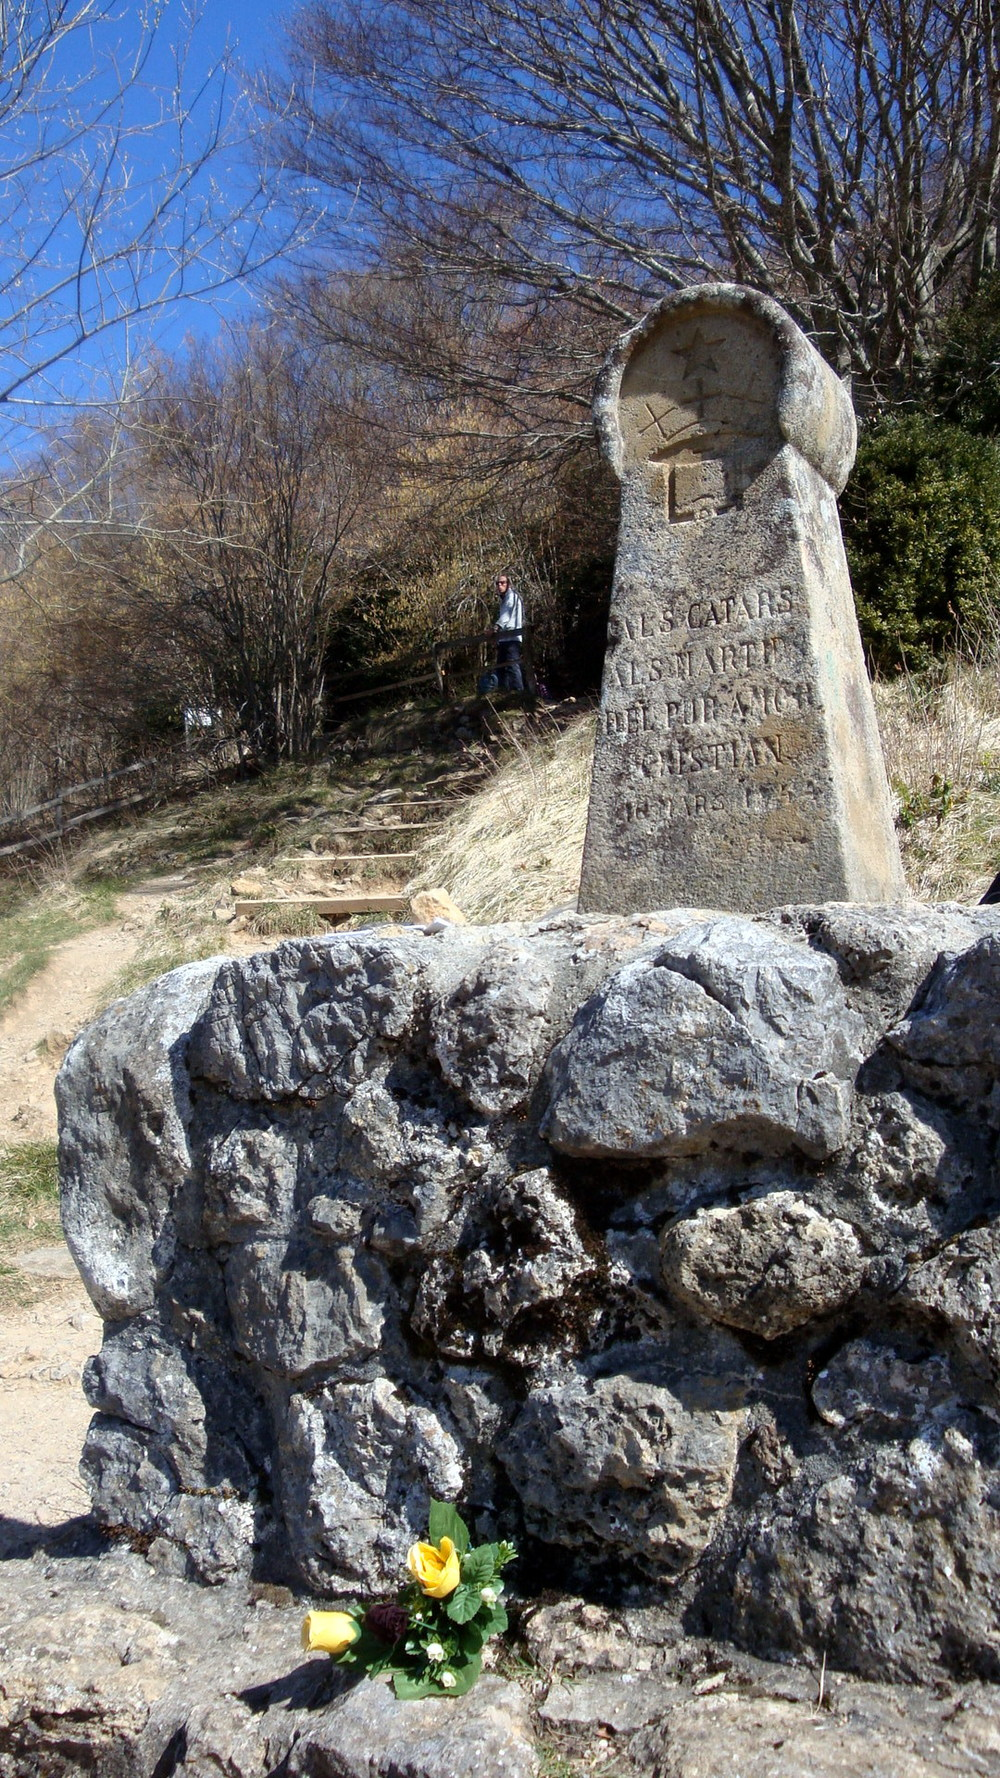 Monument at Montségur honoring those killed in the Crusade.